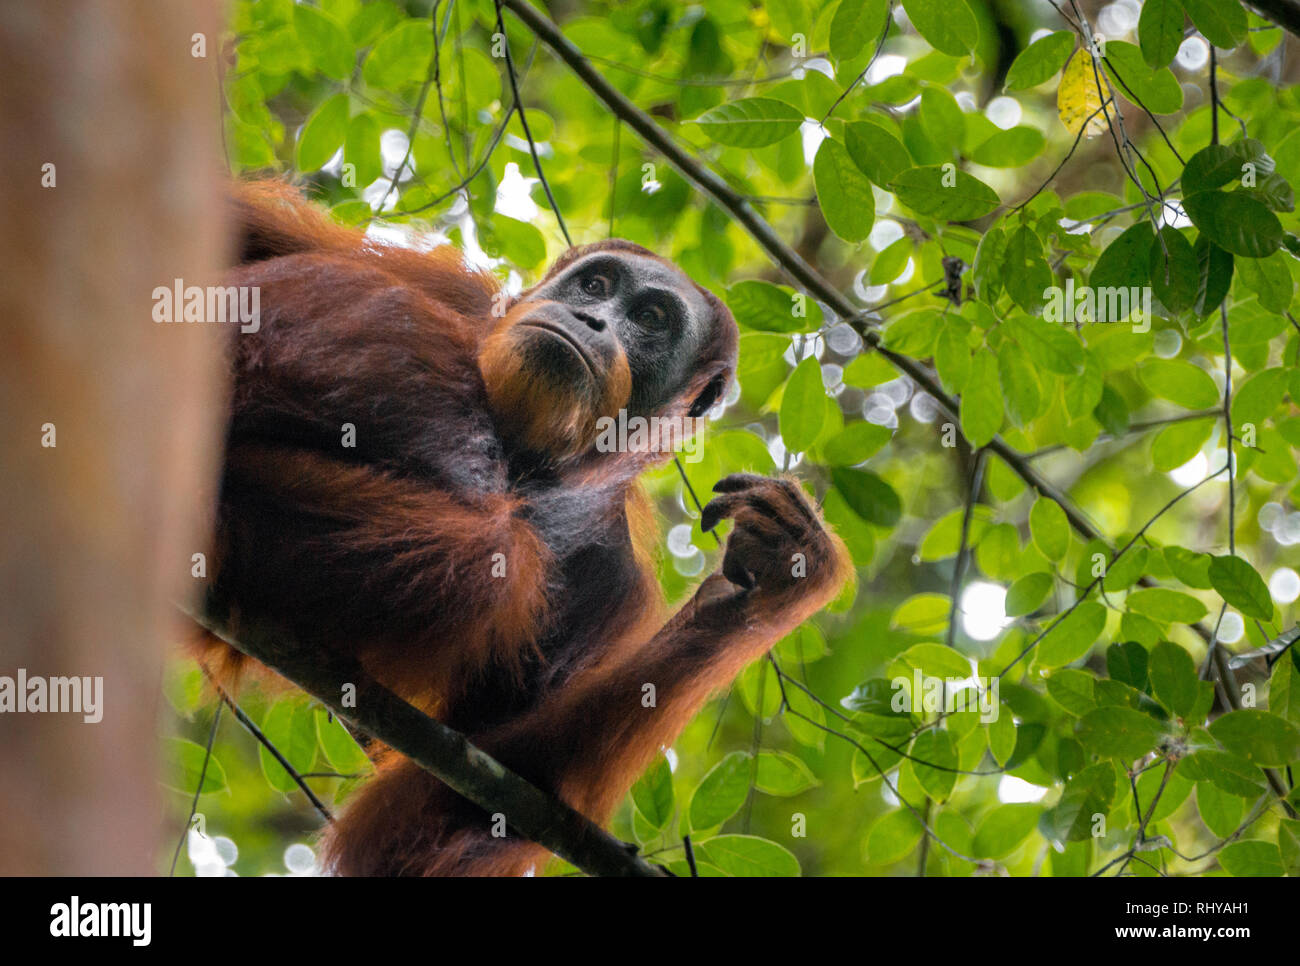 a orangutan in the Forests of Ketambe on Sumatra - Stock Image